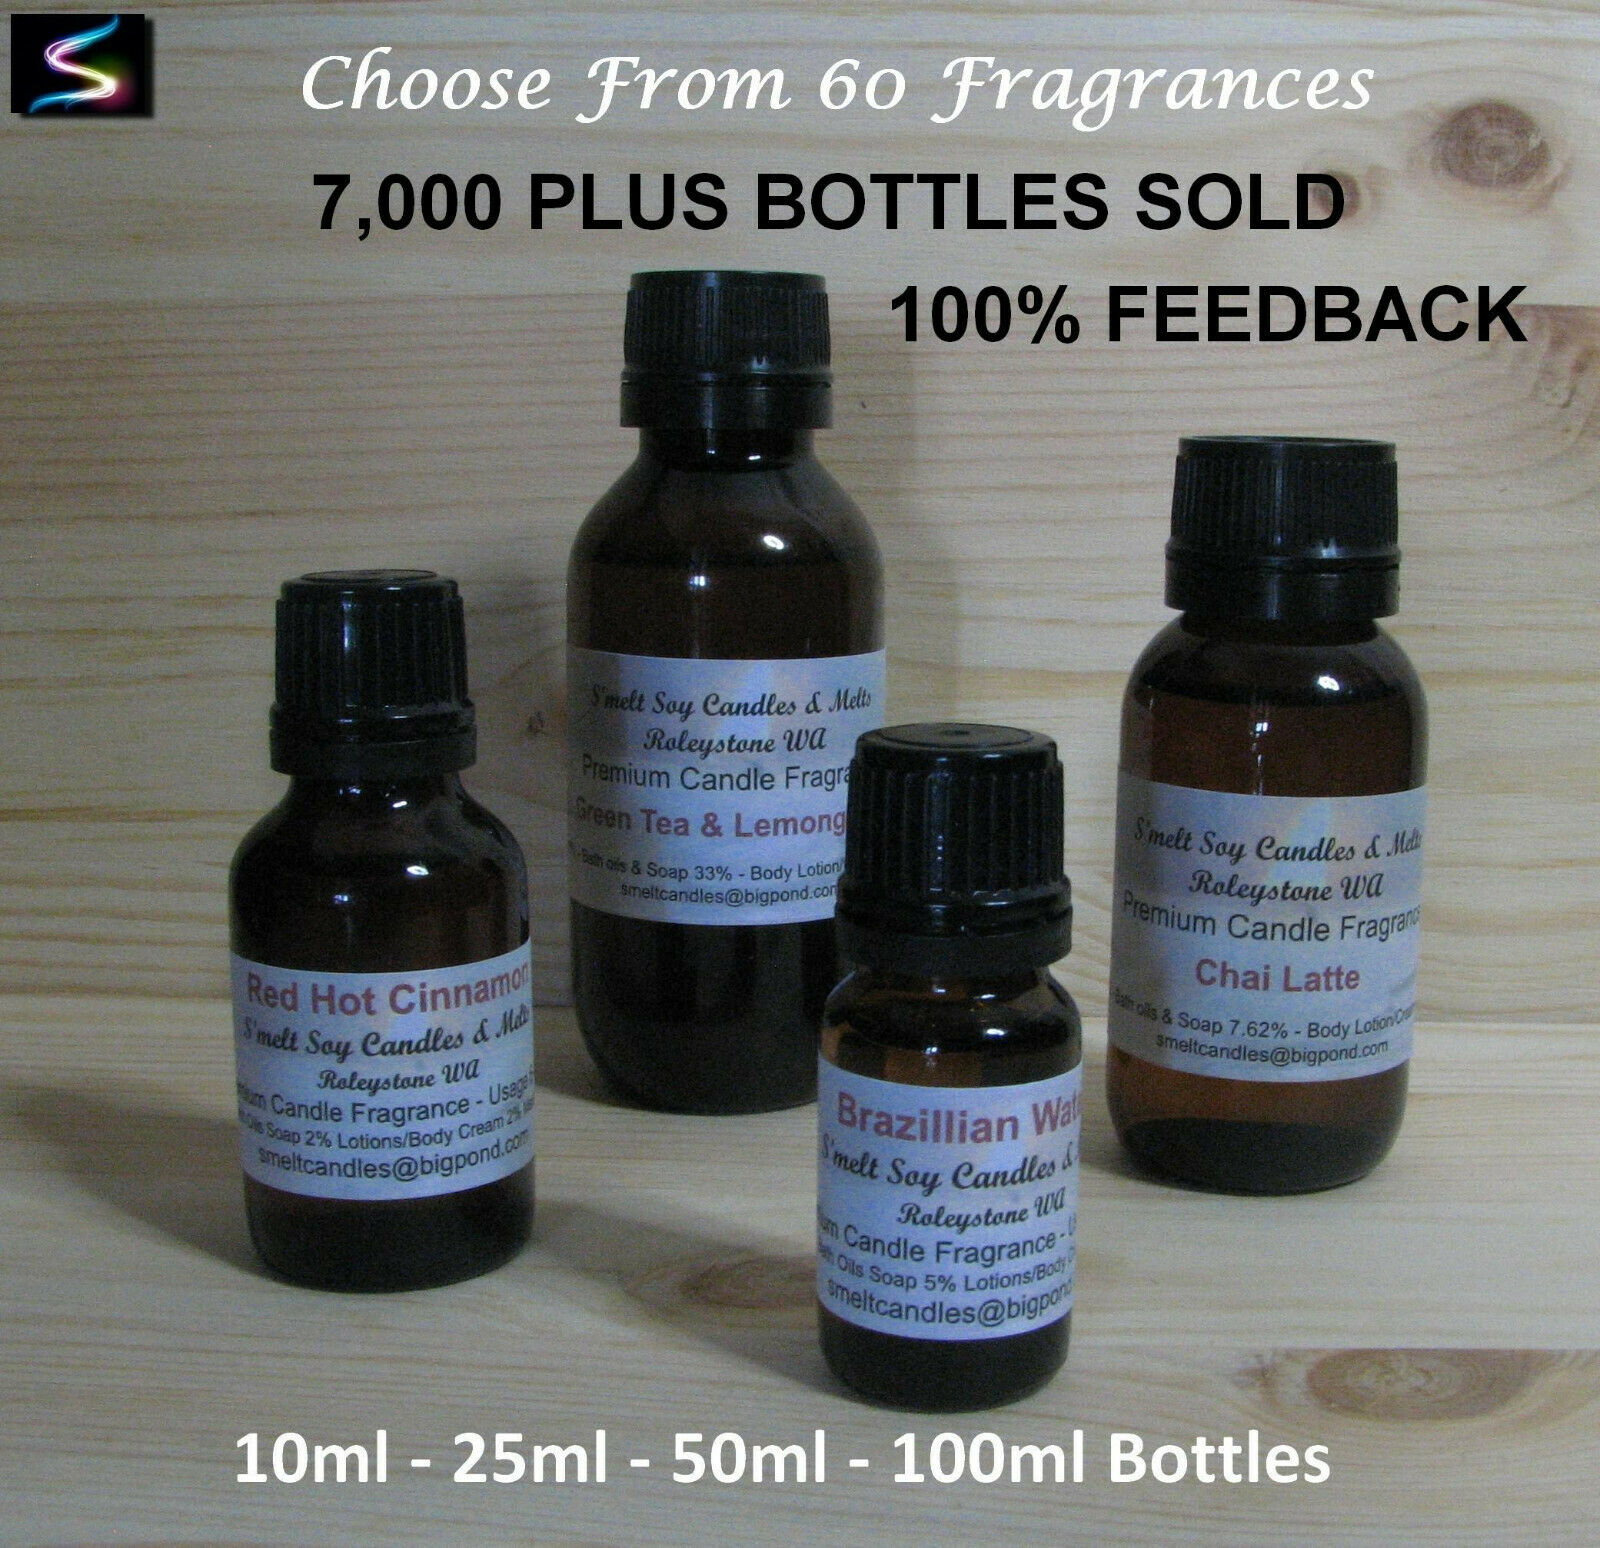 Premium Quality Fragrance Oil Candle Supplies, Soaps, Oil Burners, Soy Palm Wax